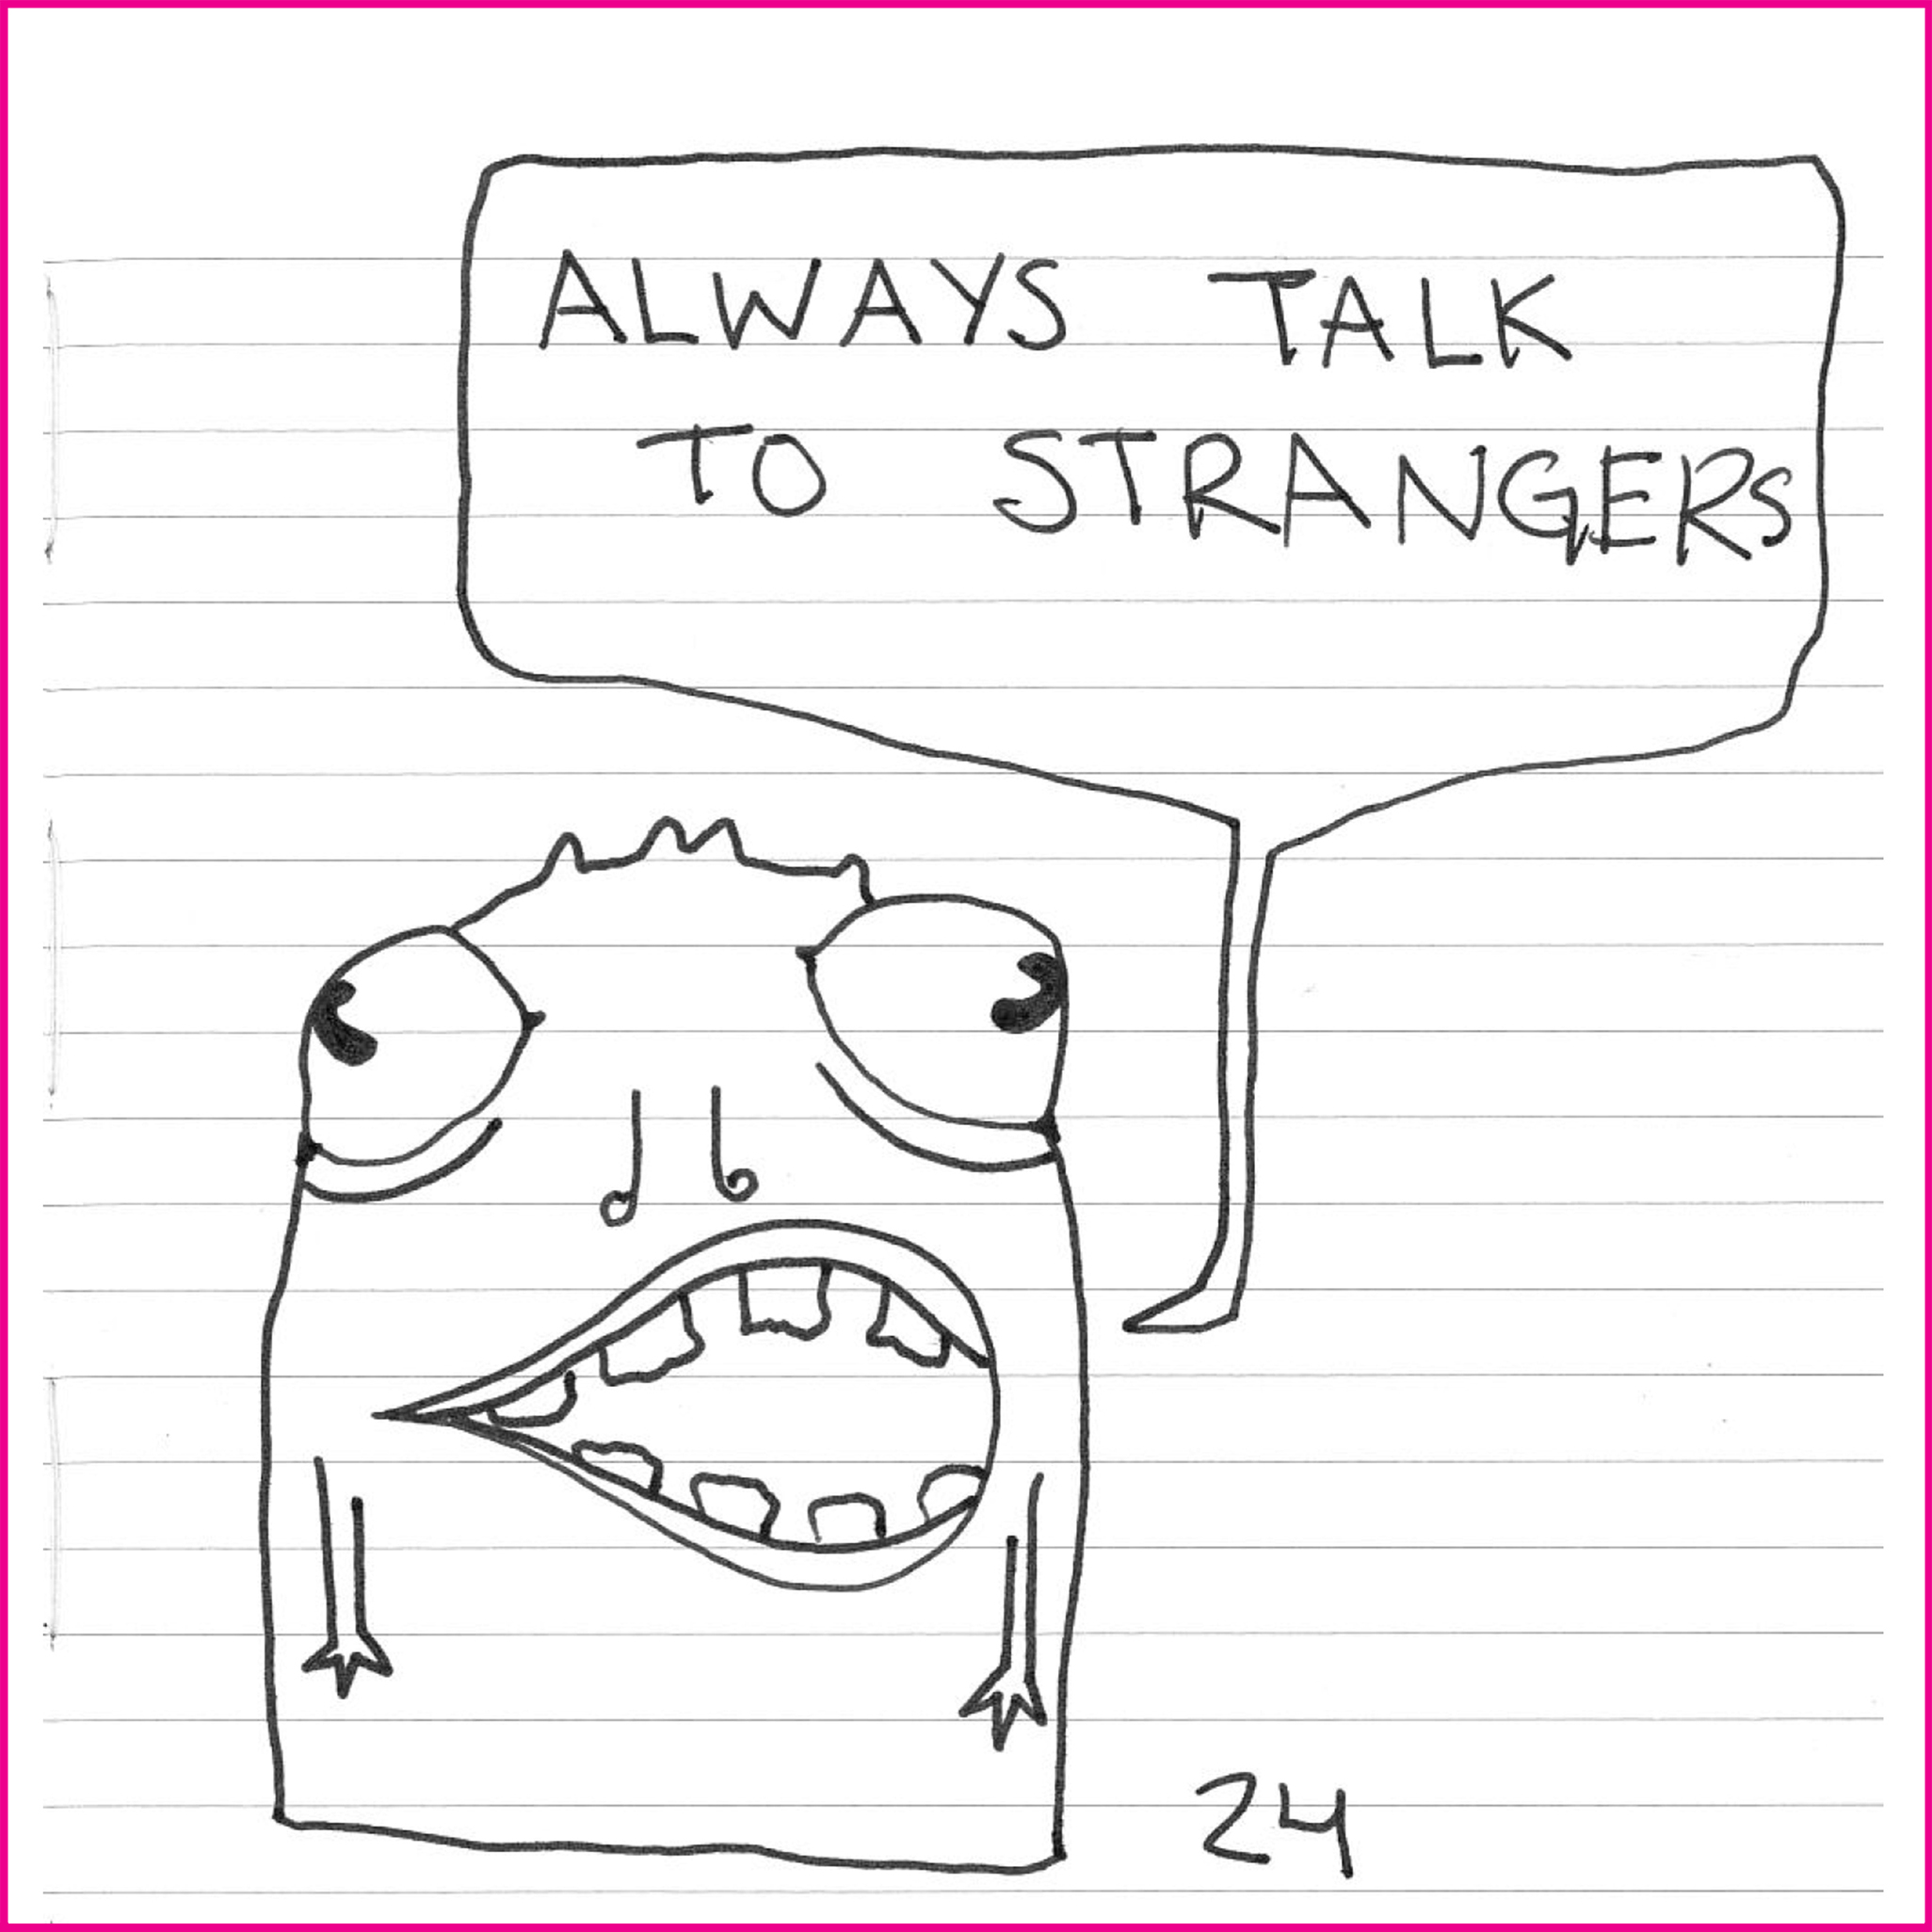 Always talk to strangers.